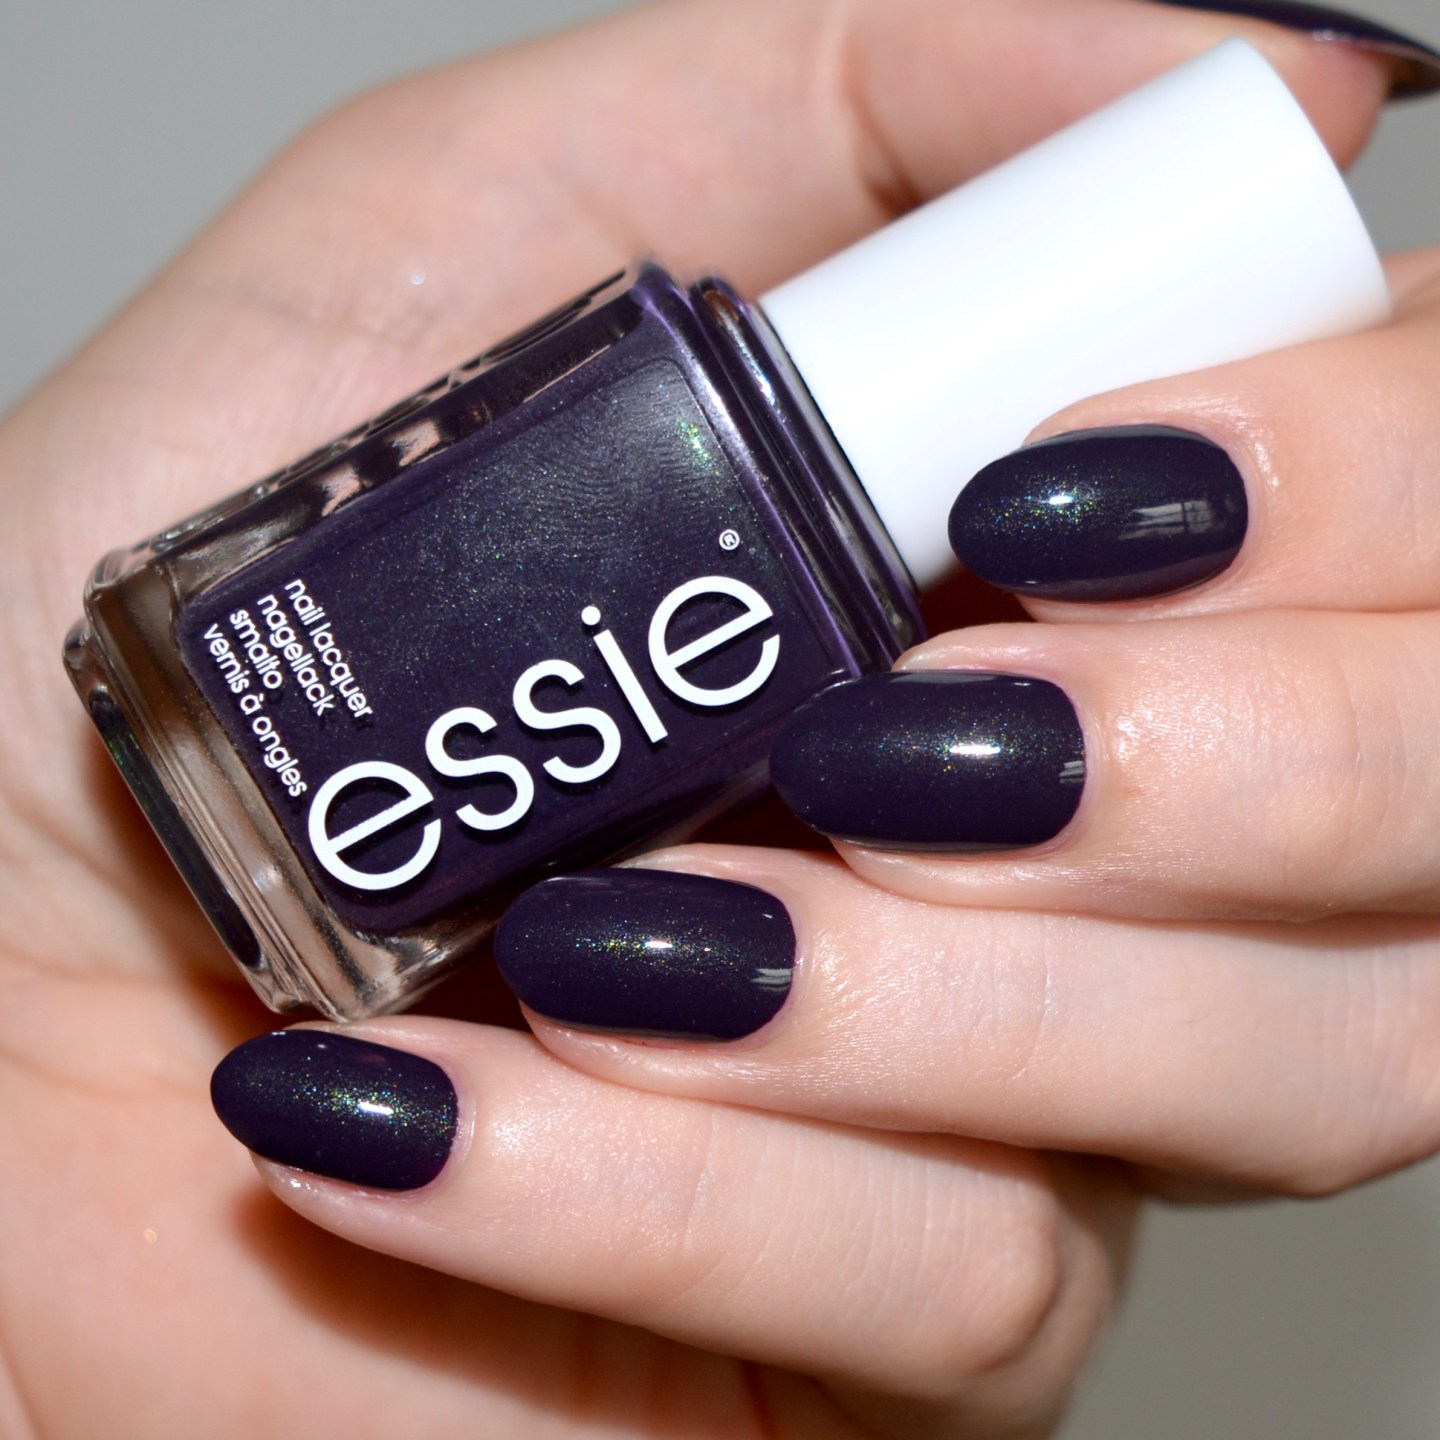 Essie Fall 2017 collection - Dress To The Nineties